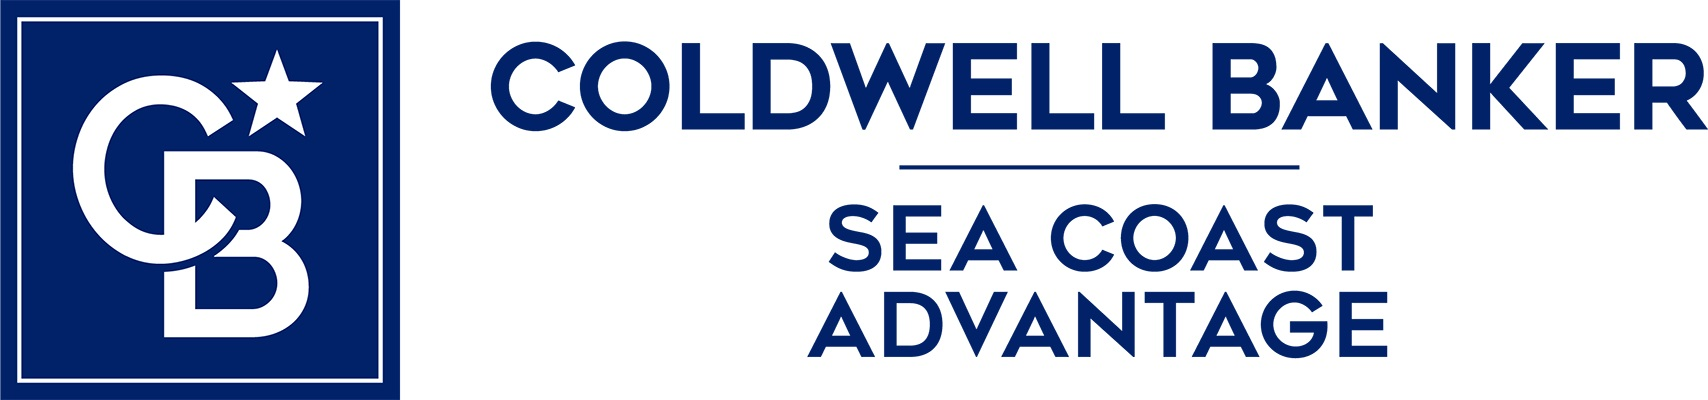 Jennifer Moore - Coldwell Banker Sea Coast Advantage Realty